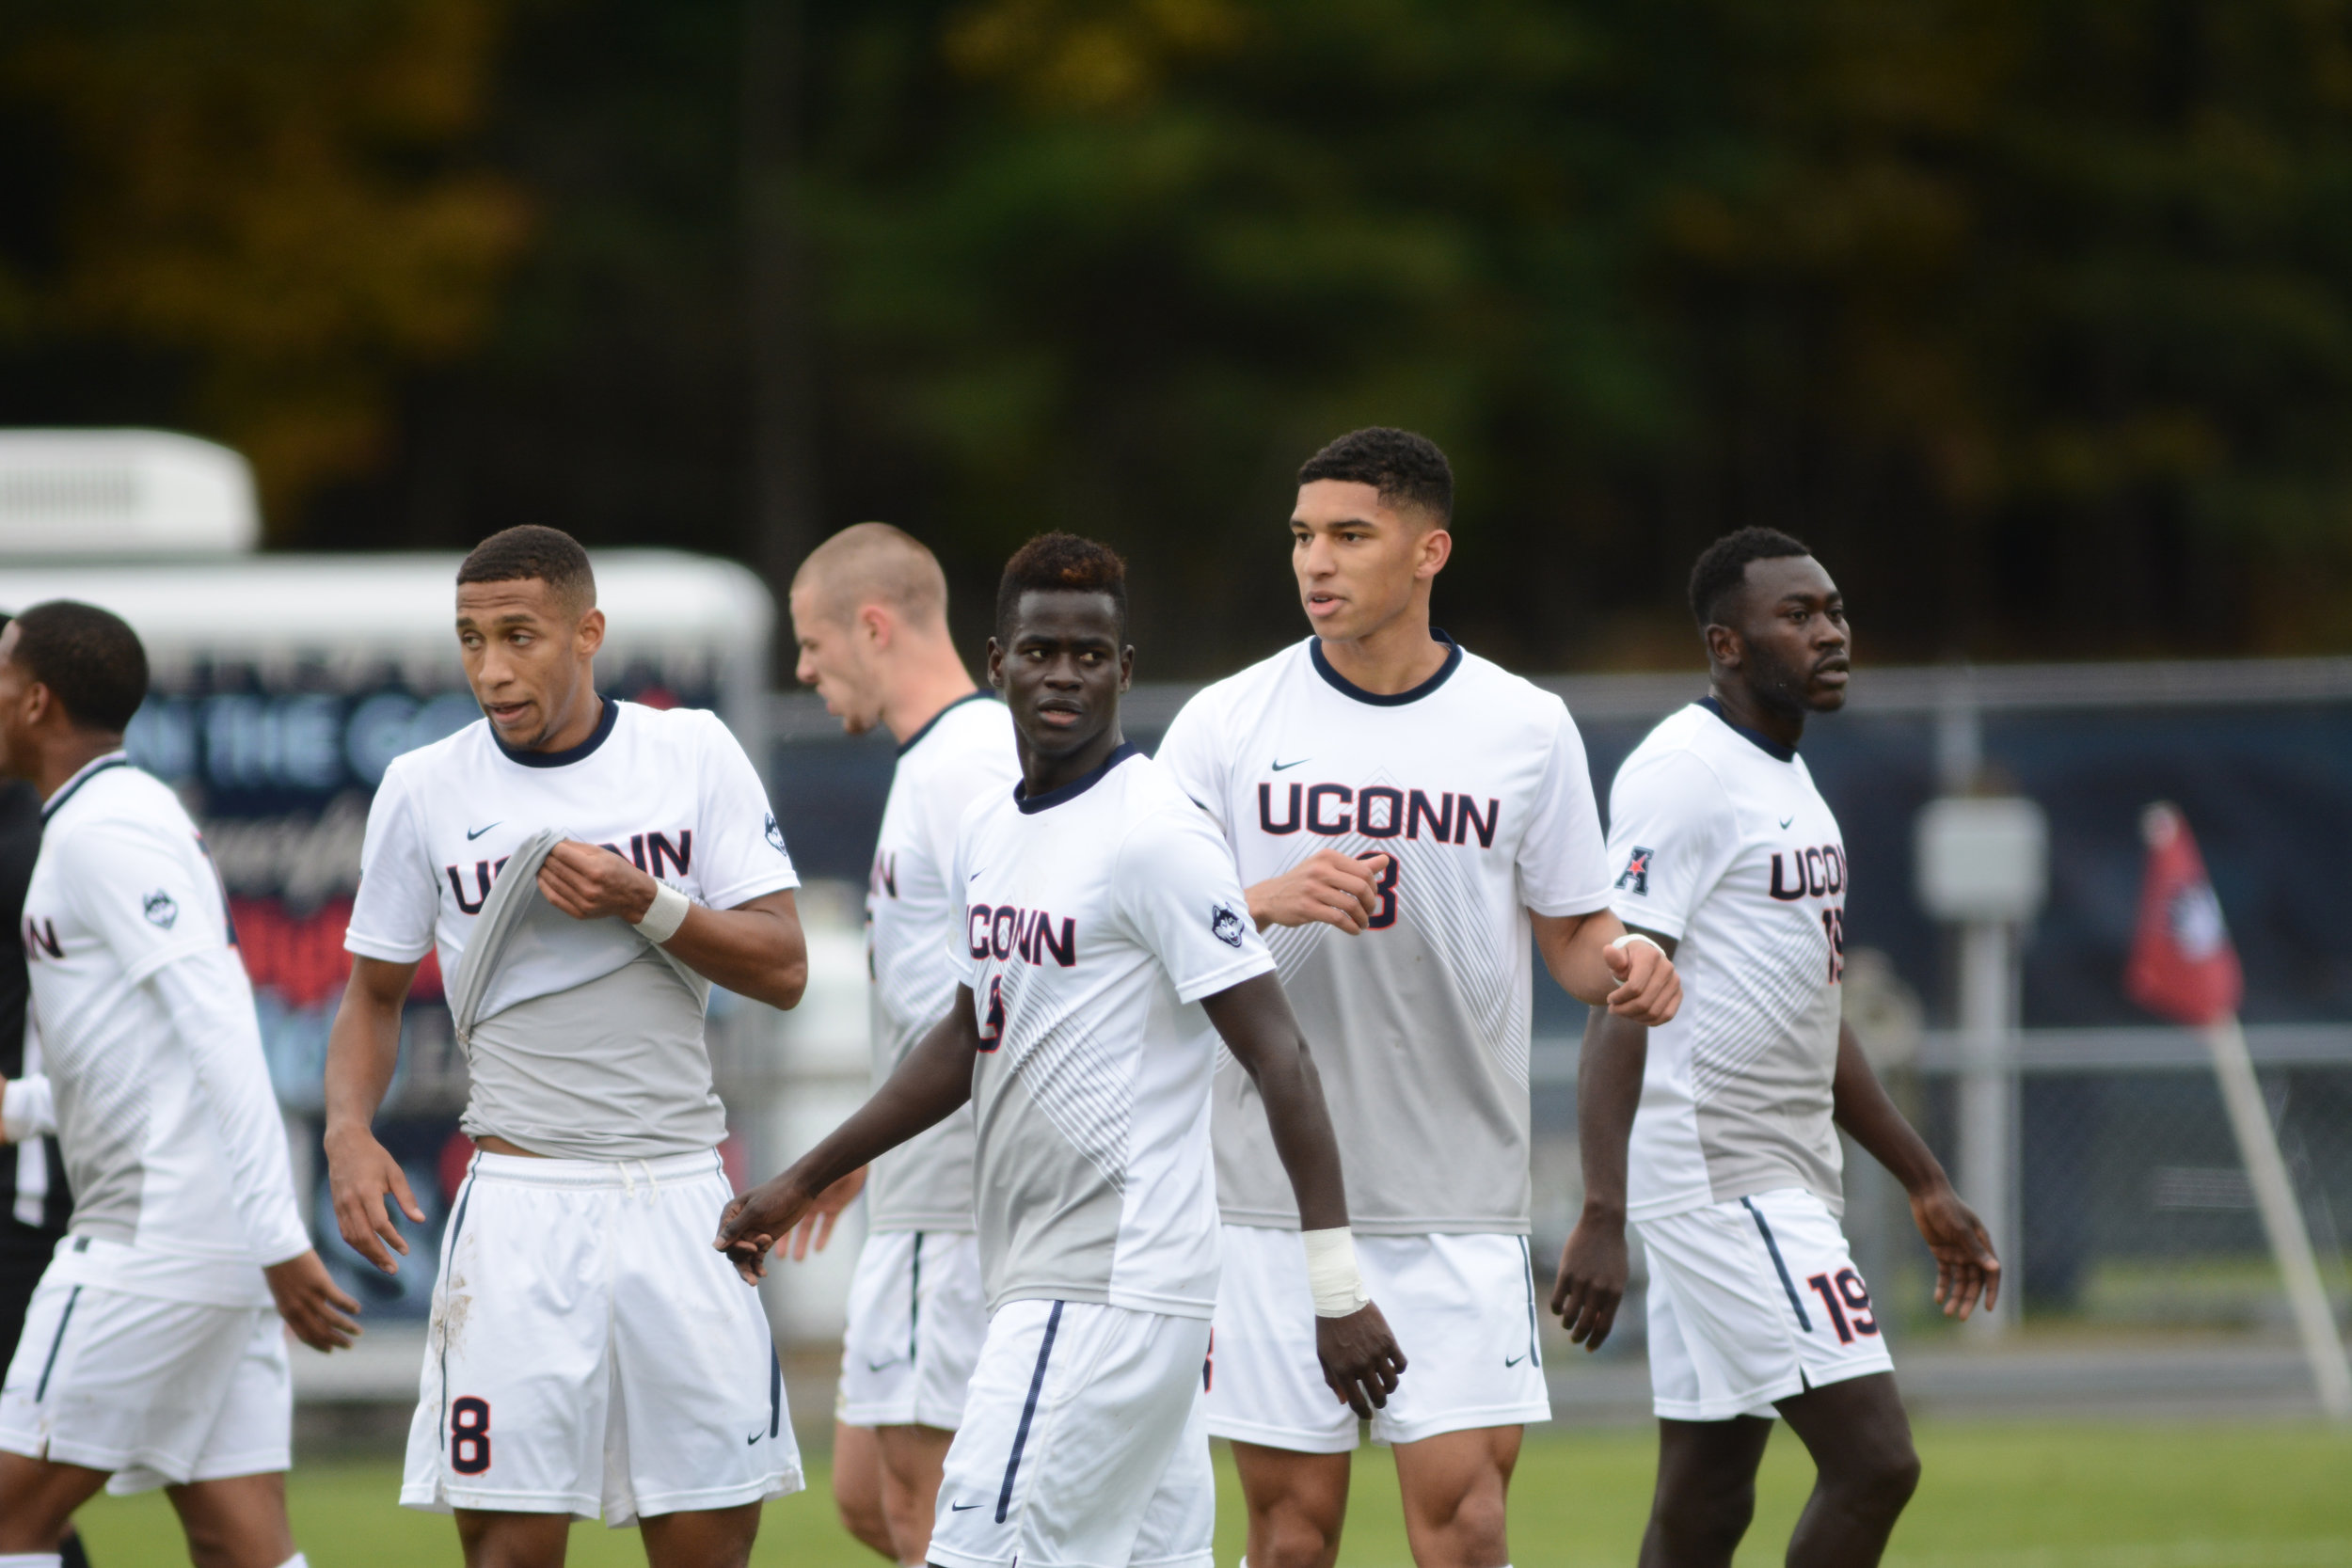 The Men's soccer team is excited to start their season this Friday night against Rider University.  Photo by Eric Wang, Staff Photographer/Daily Campus